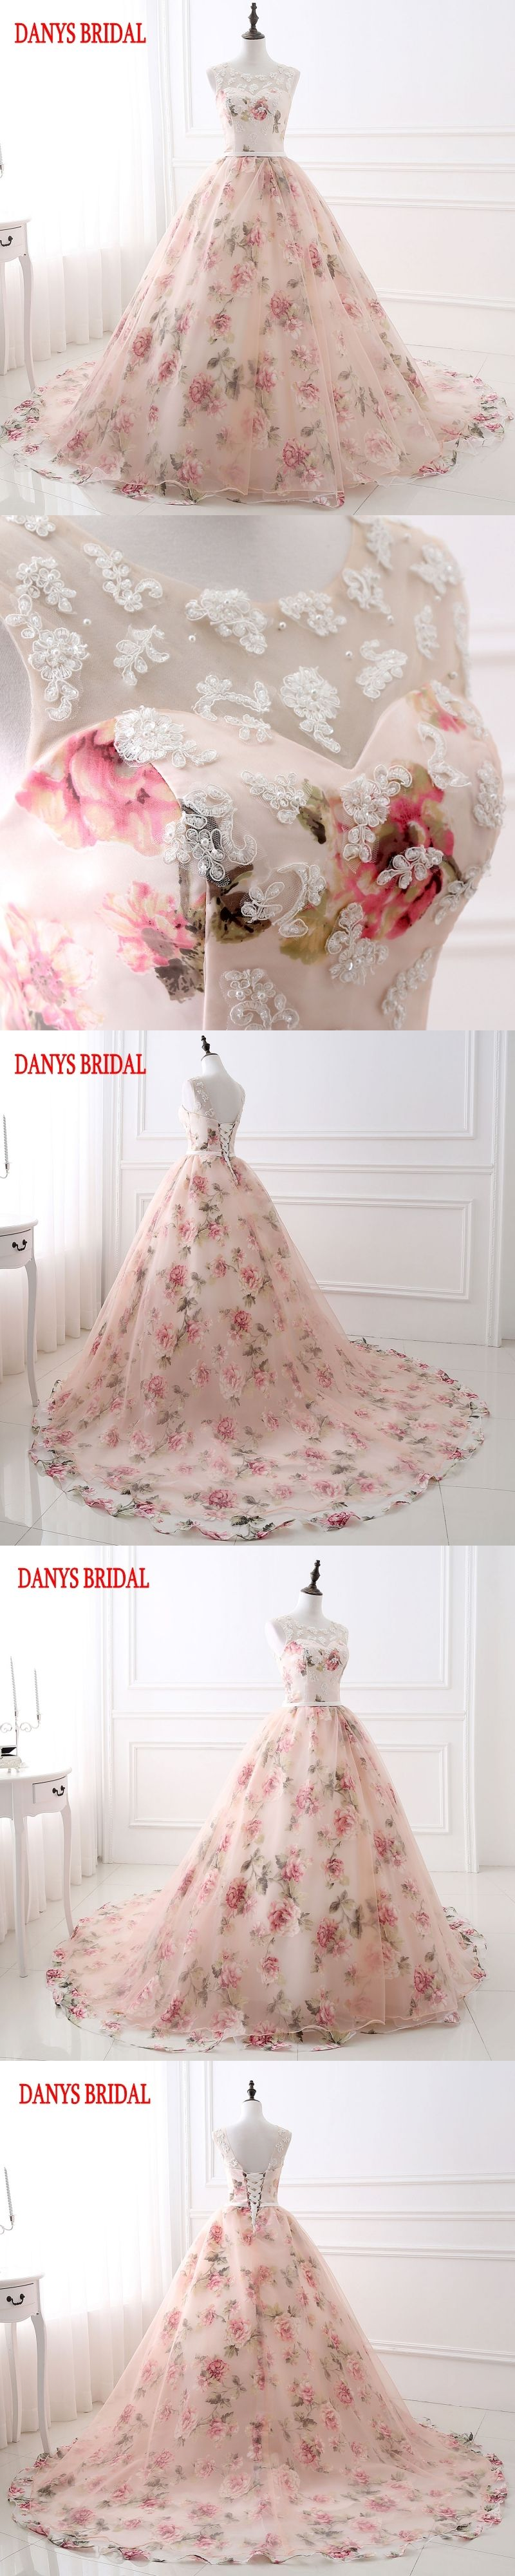 Camouflage wedding dresses colored wedding gowns weding bridal bride